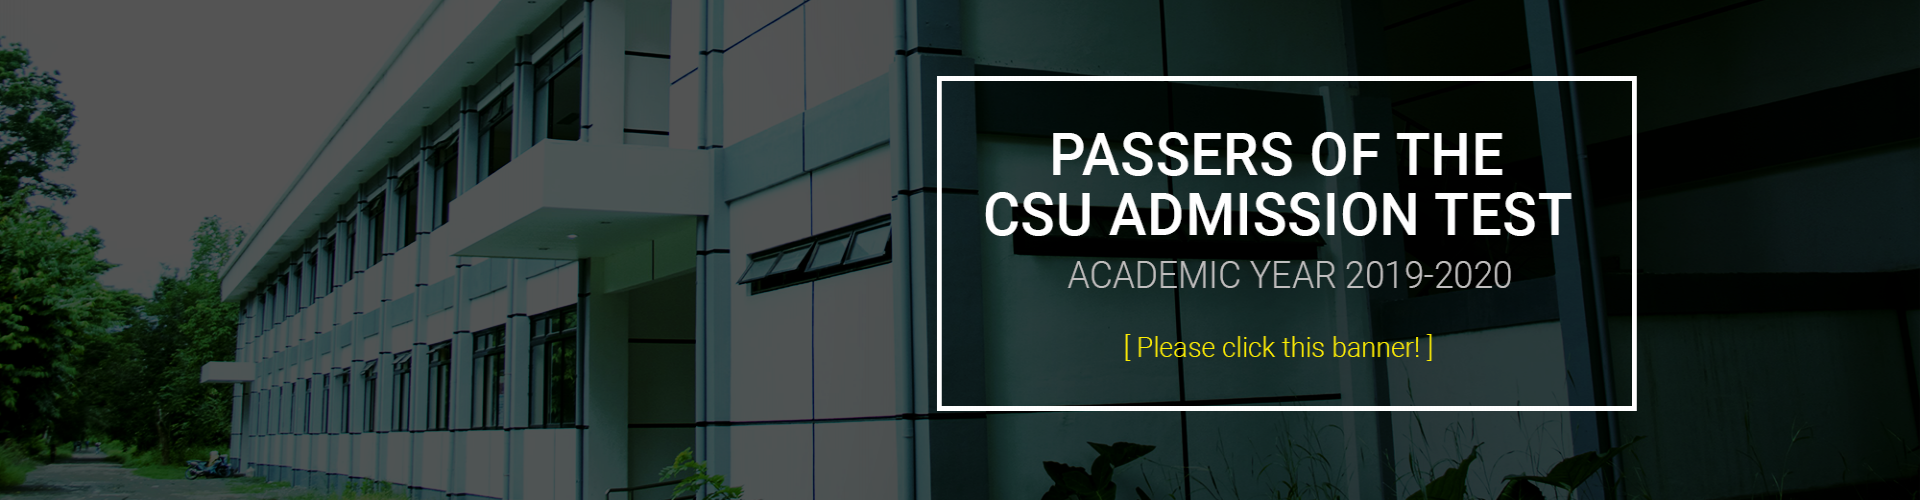 CSU Admission Test Passers Academic Year 2019-2020